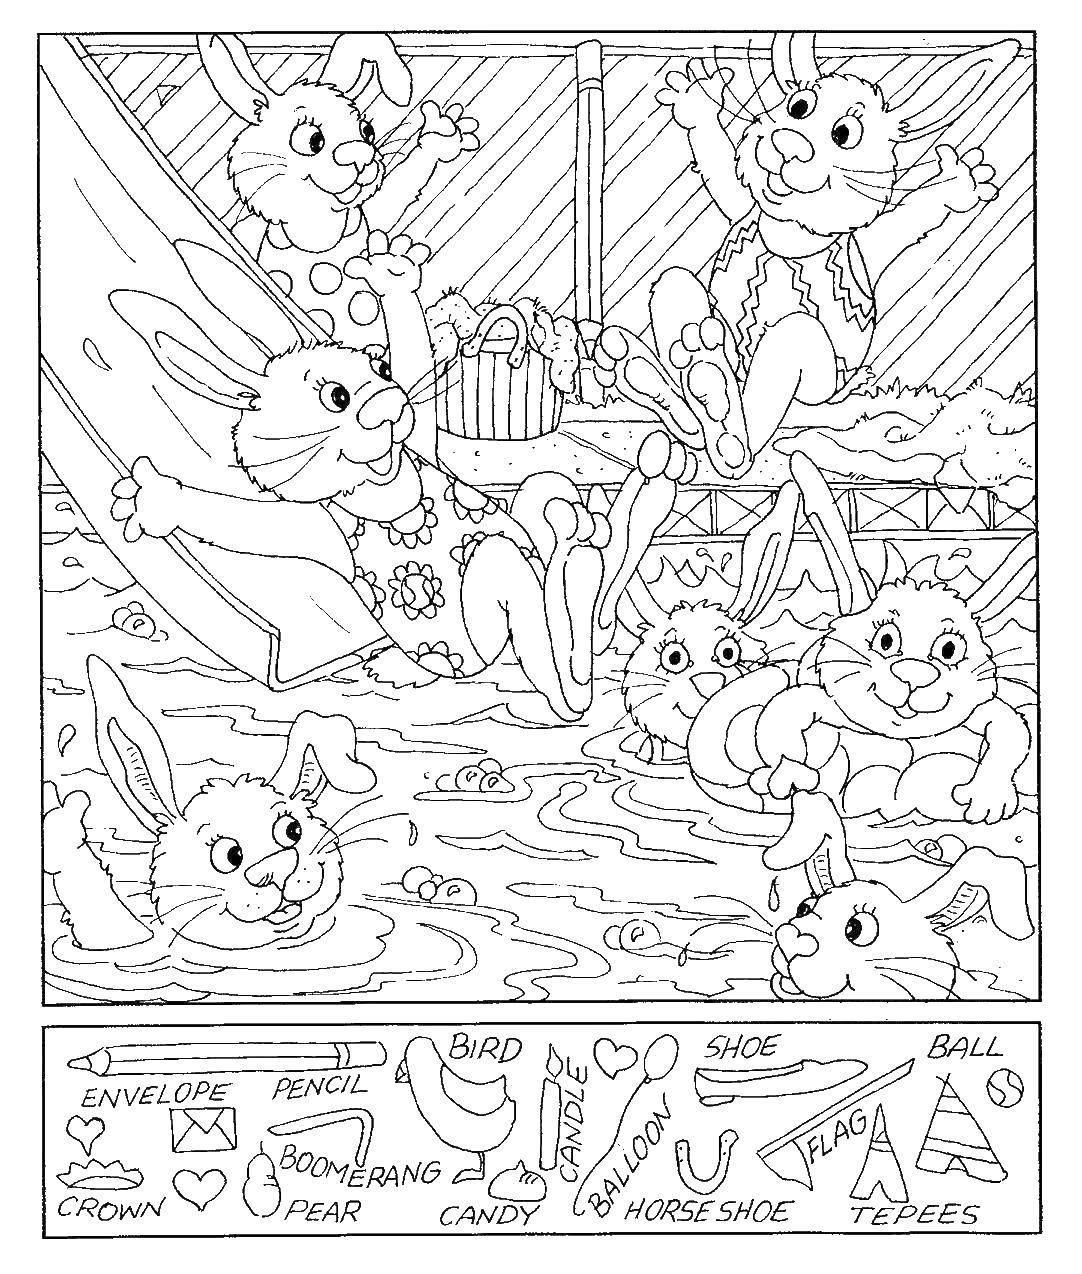 Online Coloring Pages Picnic Coloring Bunnies On A Picnic Find What